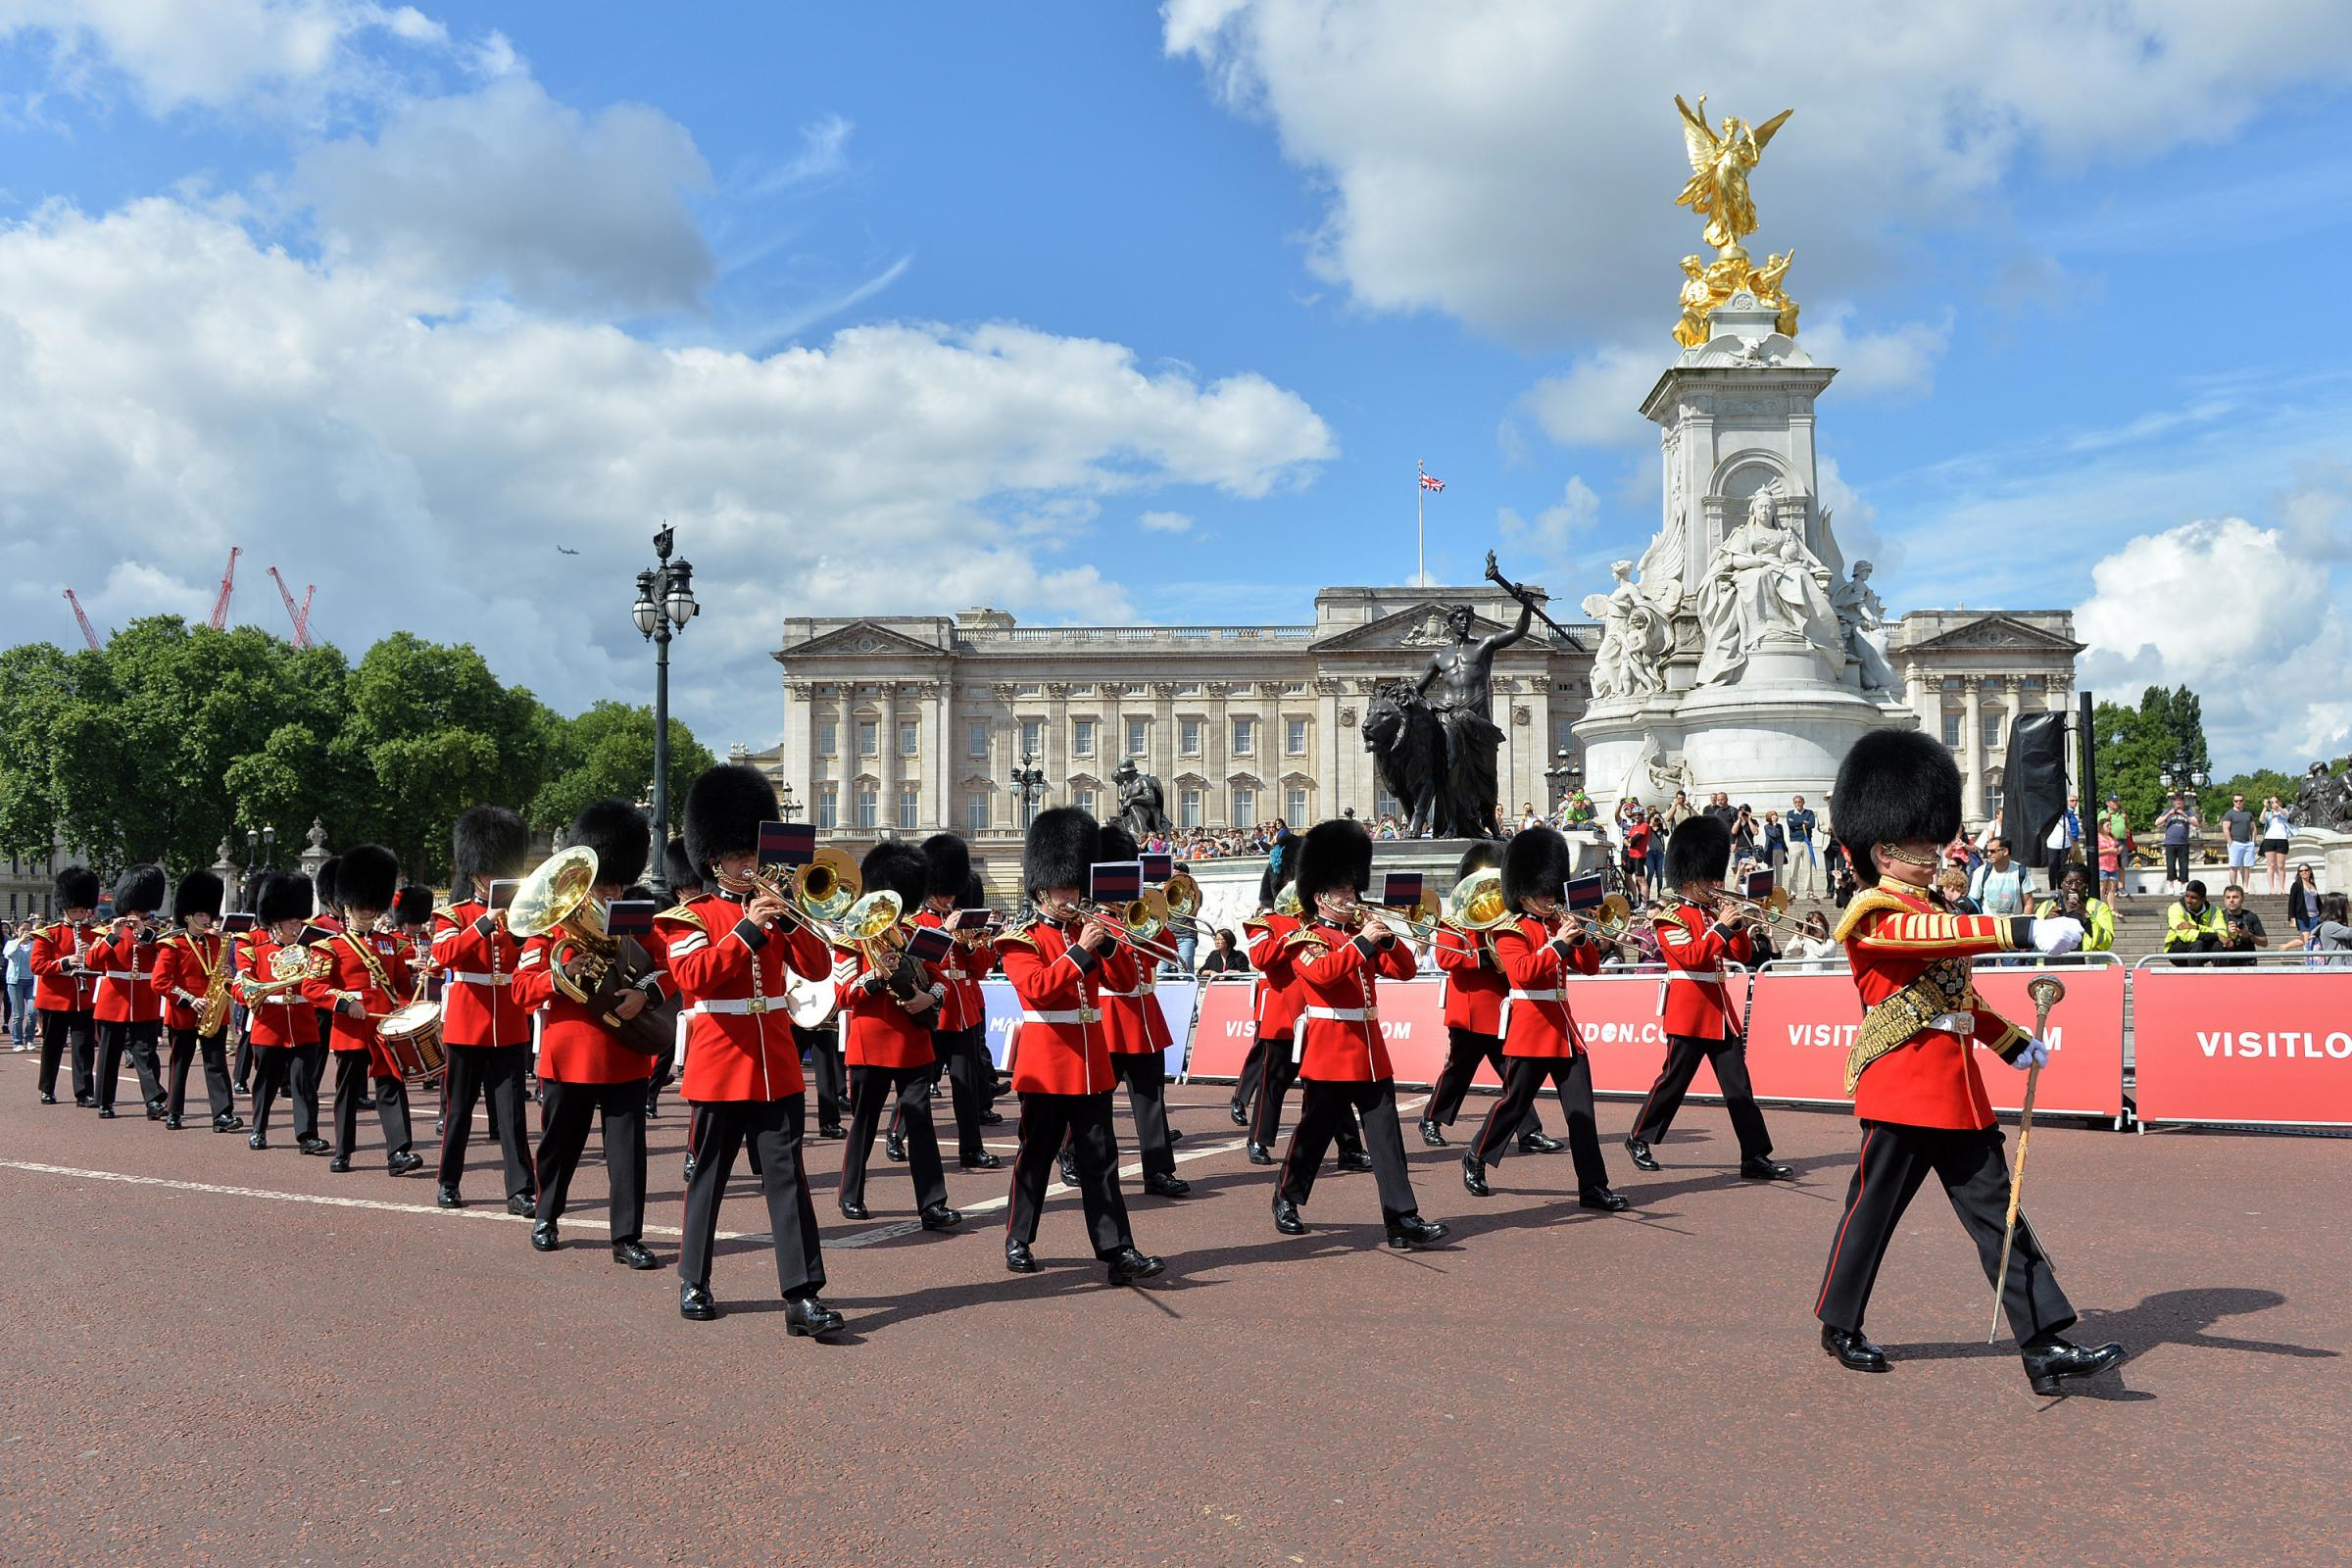 The Band of the Welsh Guards outside Buckingham Palace. Picture: Sgt Steve Blake RLC